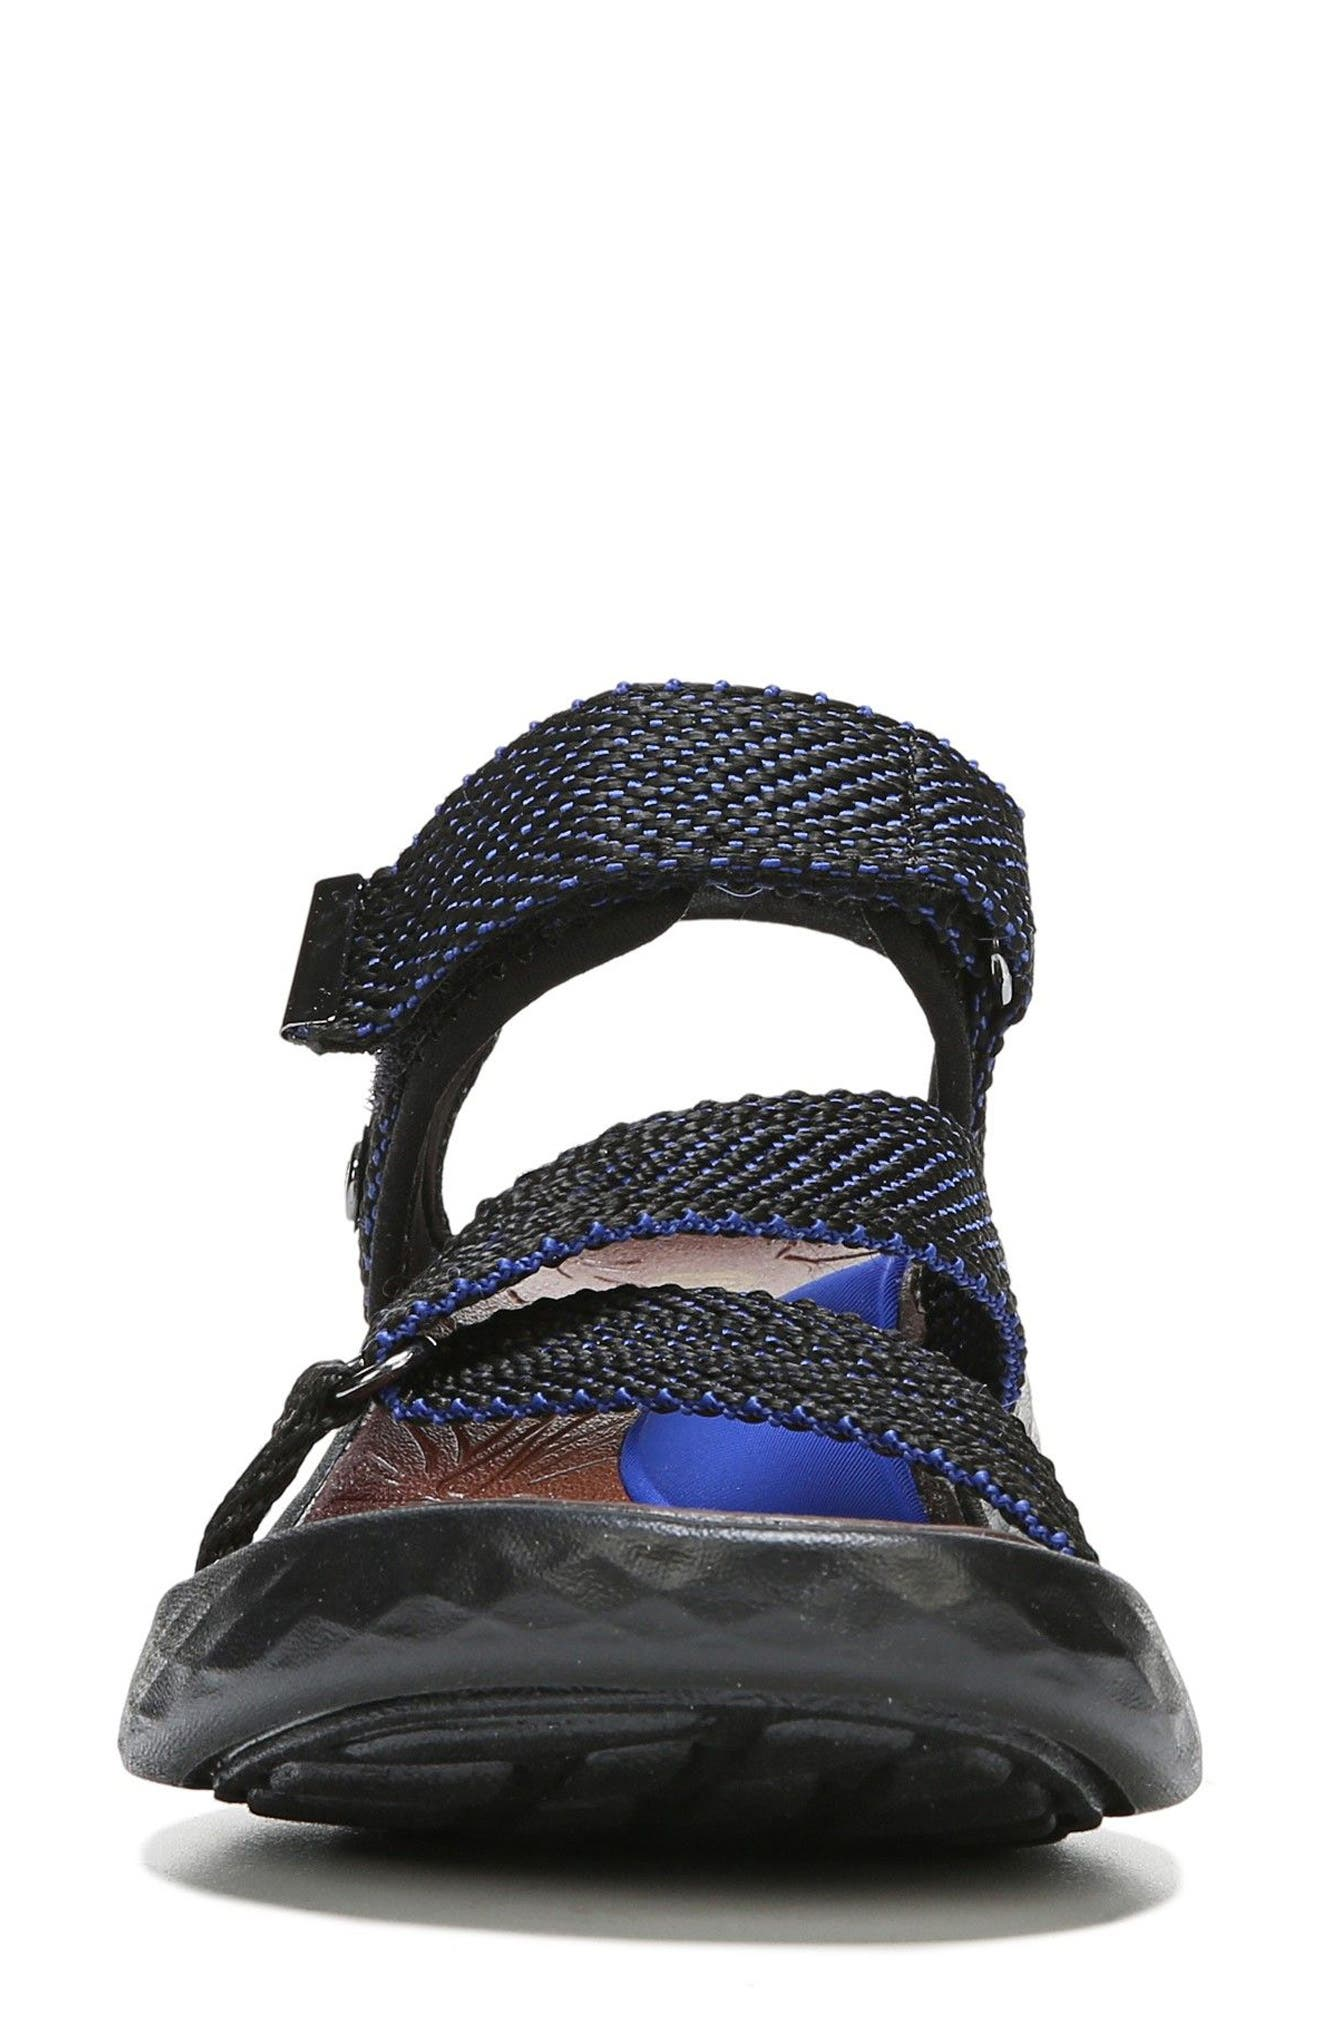 Jive Sandal,                             Alternate thumbnail 4, color,                             BLUE WEBBING FABRIC